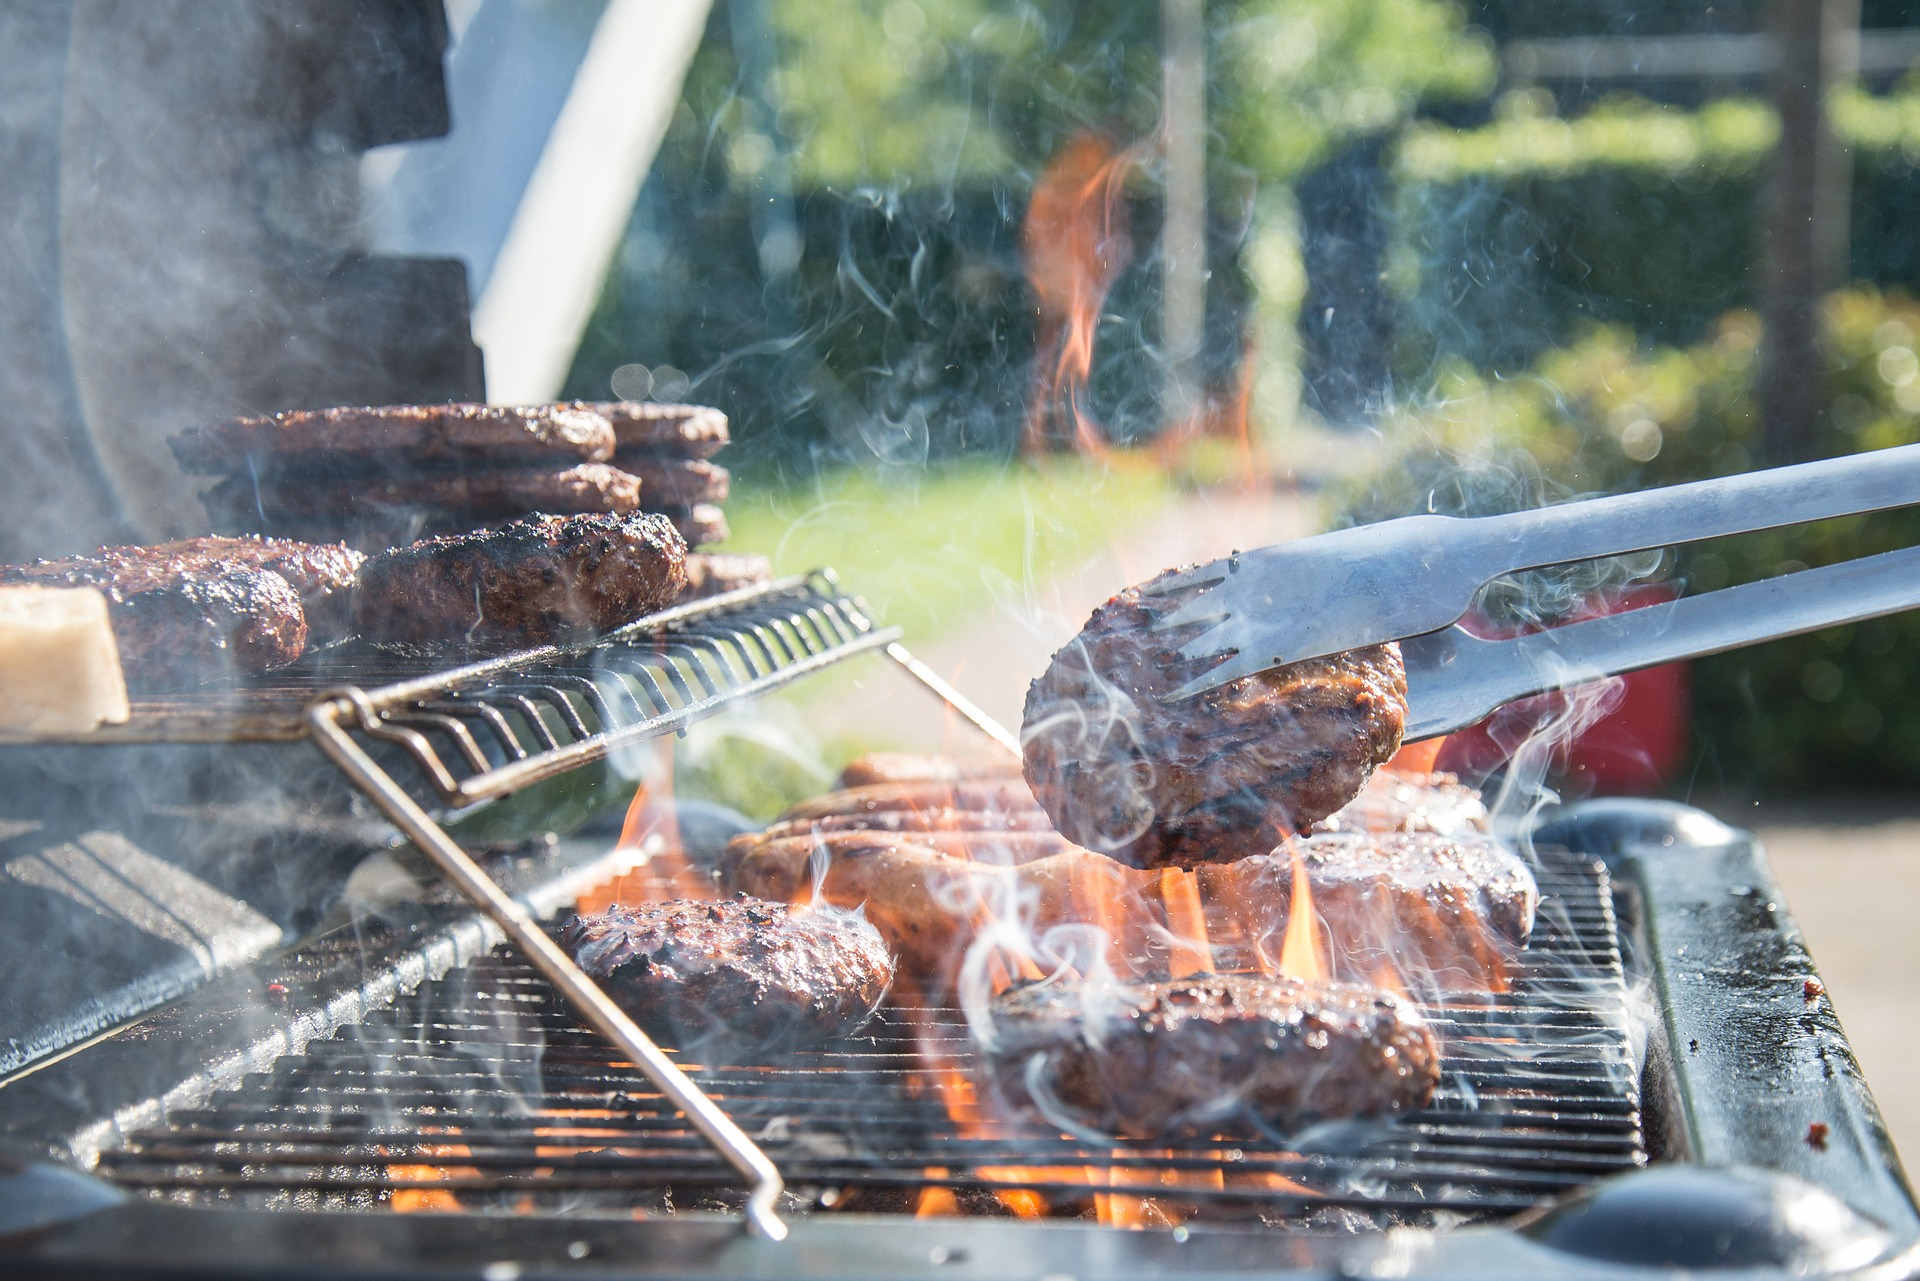 How to Throw Cheap BBQ on 4th of July